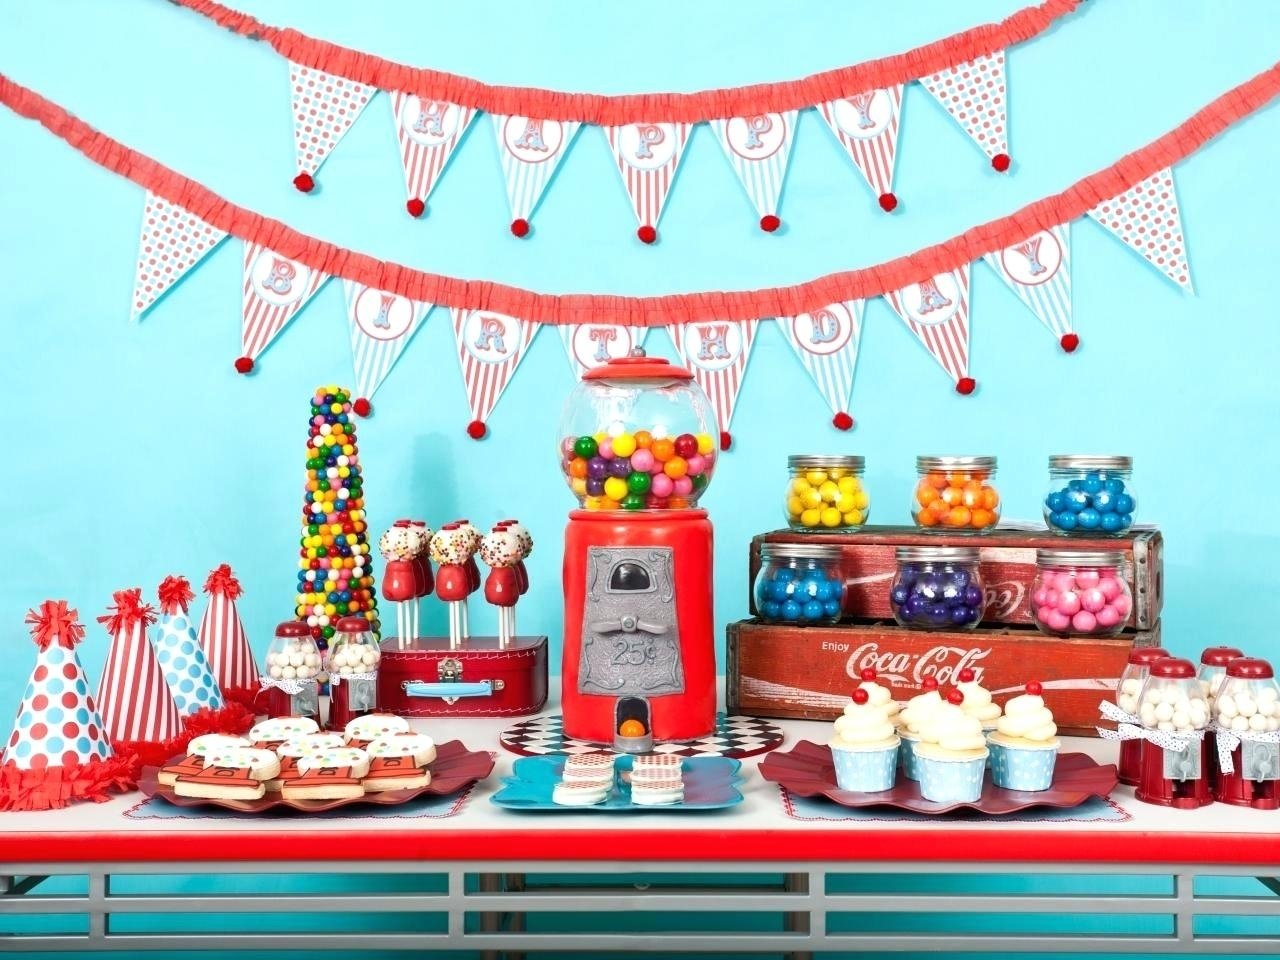 10 Famous Birthday Party Ideas For 16 Year Old Boy interesting 12 year old boy birthday party ideas at home mystery 1 2020